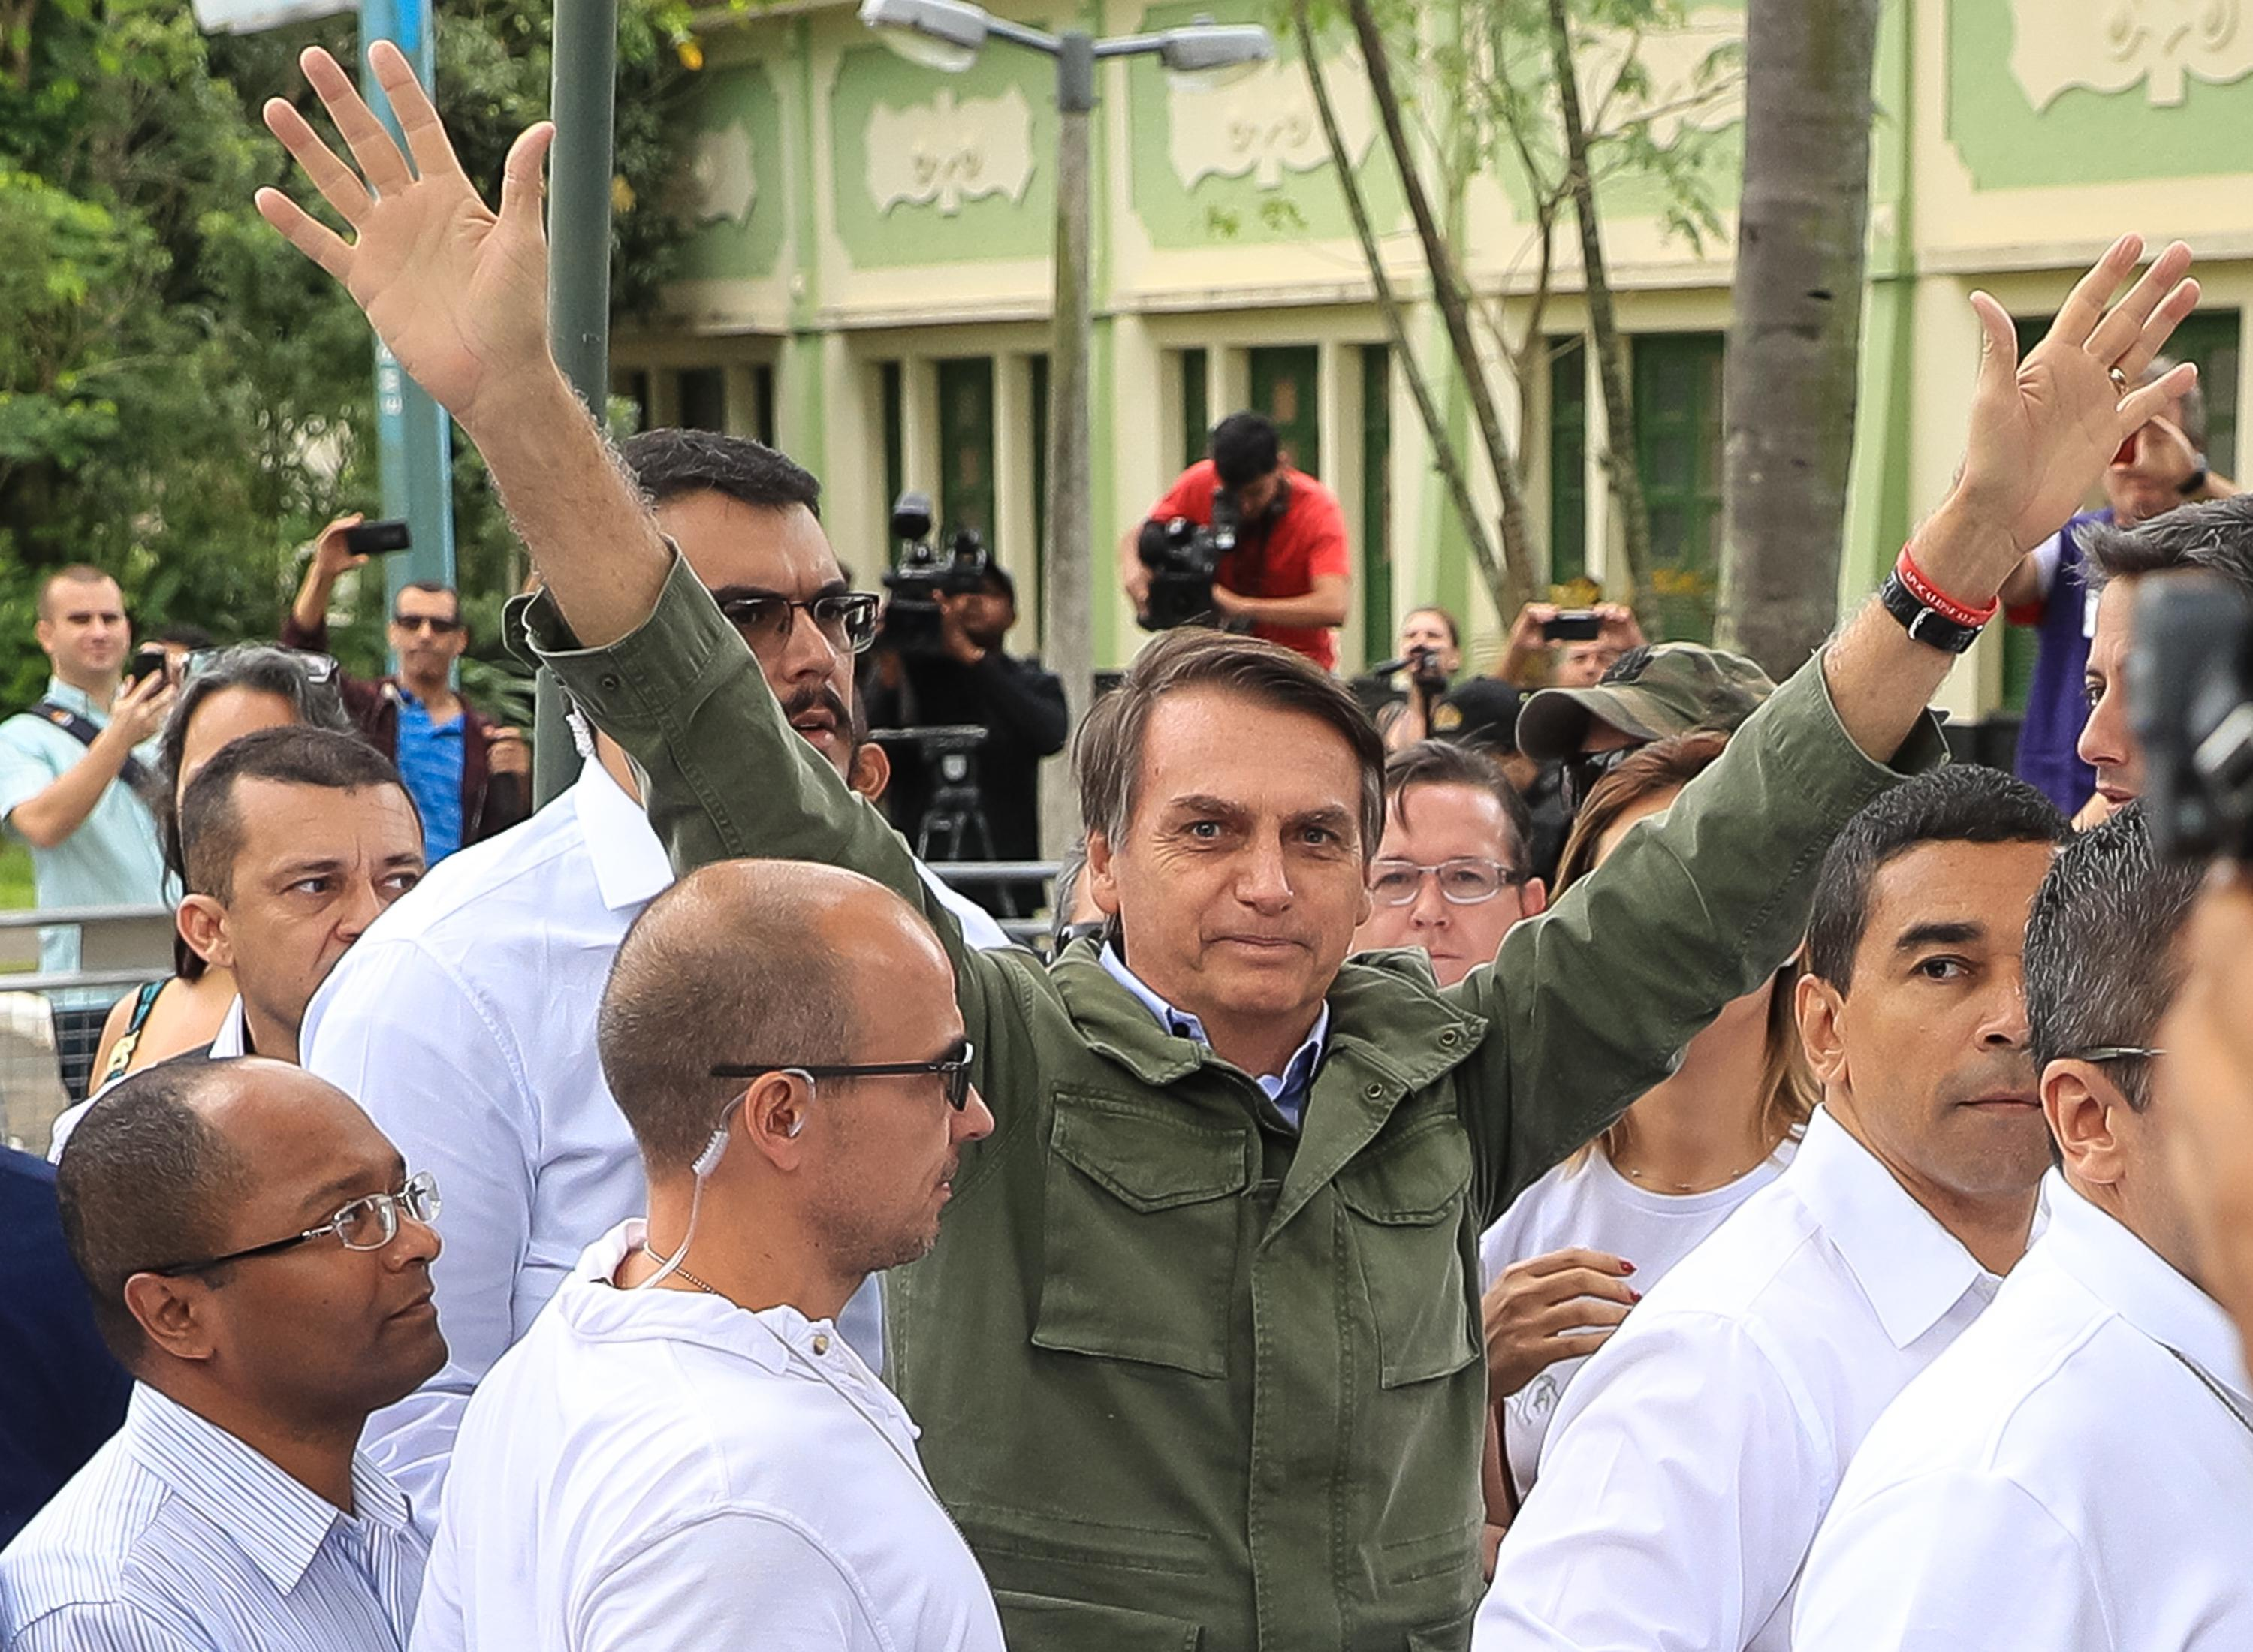 Jair Bolsonaro gestures after casting his vote during general elections on October 28, 2018 in Rio de Janeiro, Brazil.